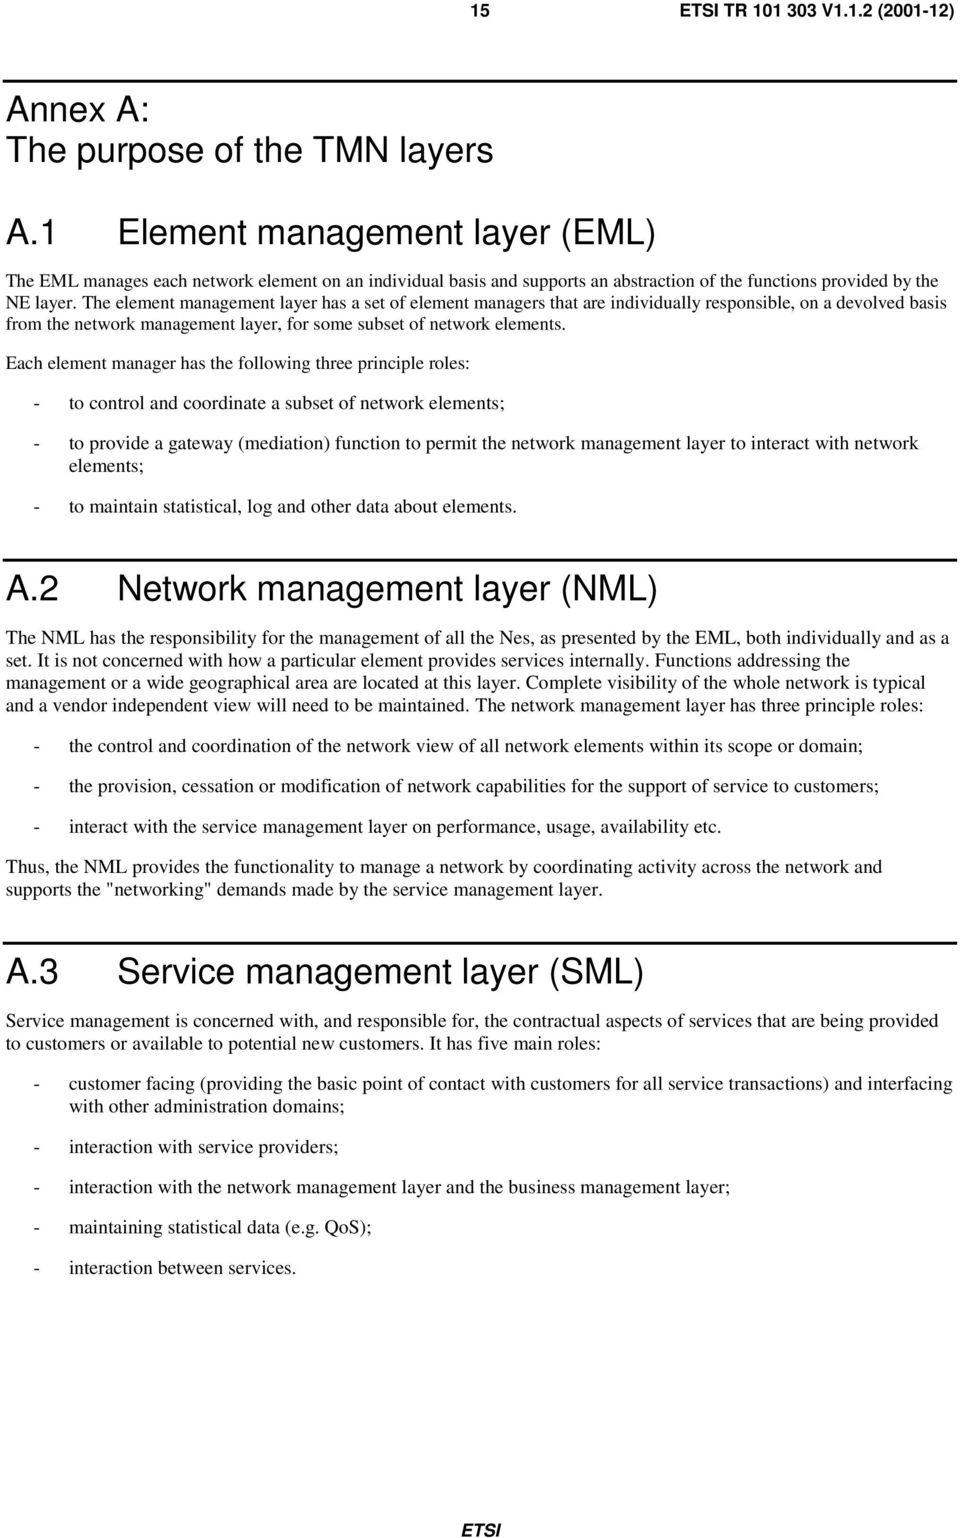 The element management layer has a set of element managers that are individually responsible, on a devolved basis from the network management layer, for some subset of network elements.